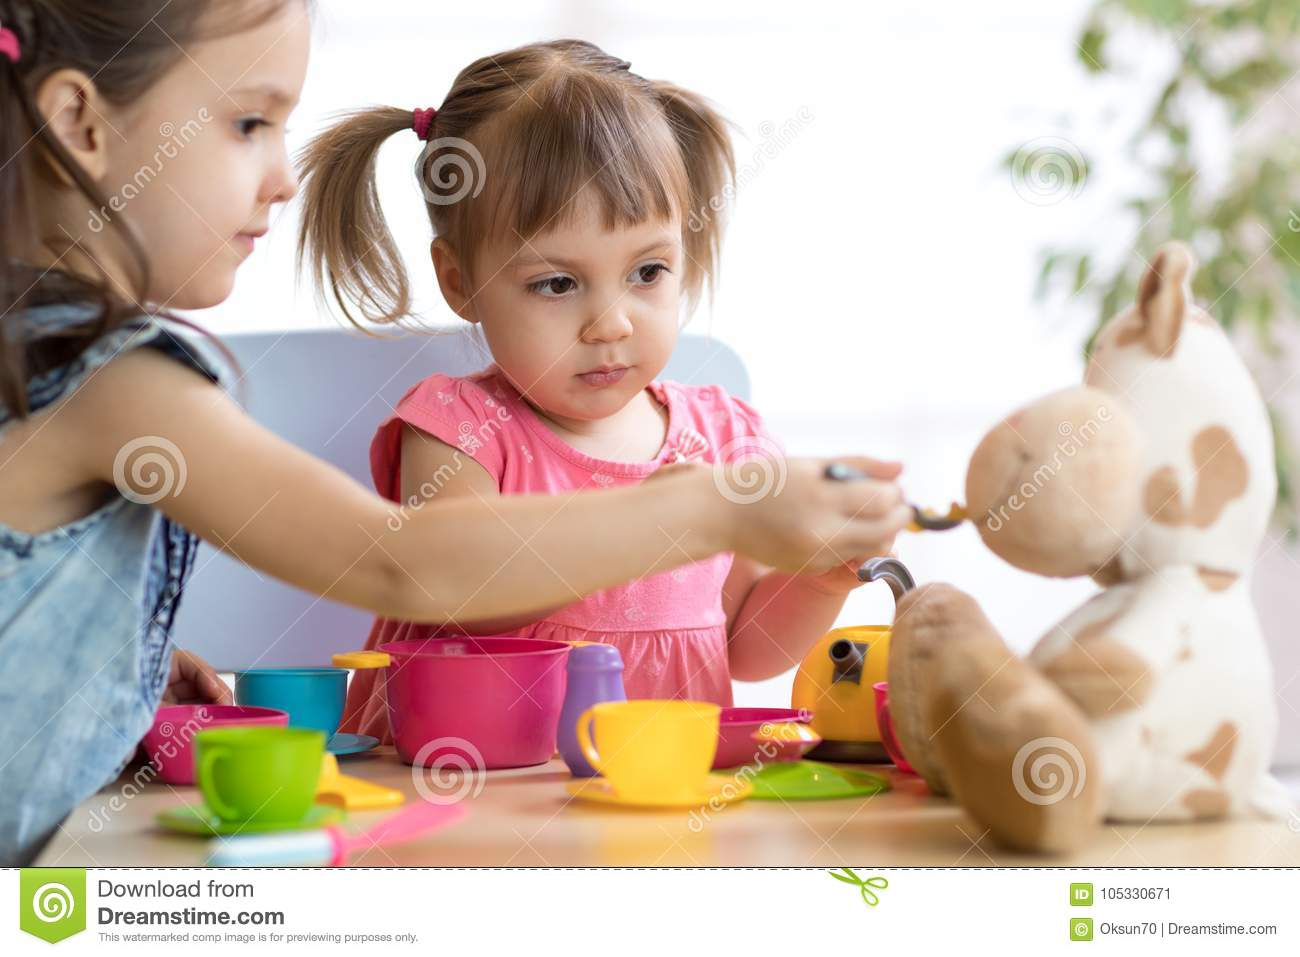 Close-up portrait of cute adorable little kids feeding caw plush toy